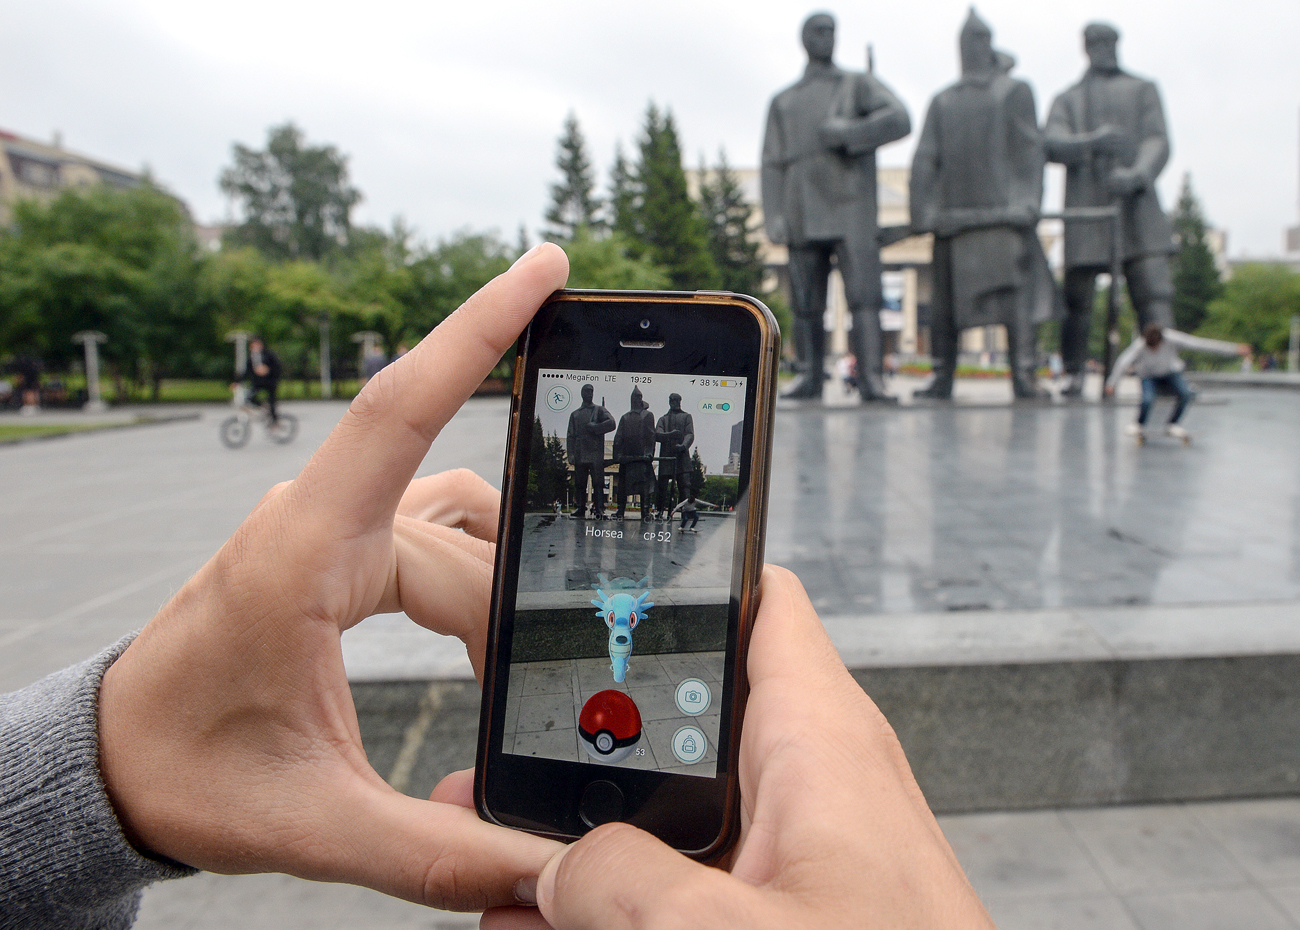 Pokémon Go, the mobile game from Nintendo, on their mobile phones in the park across the street from the Novosibirsk Opera